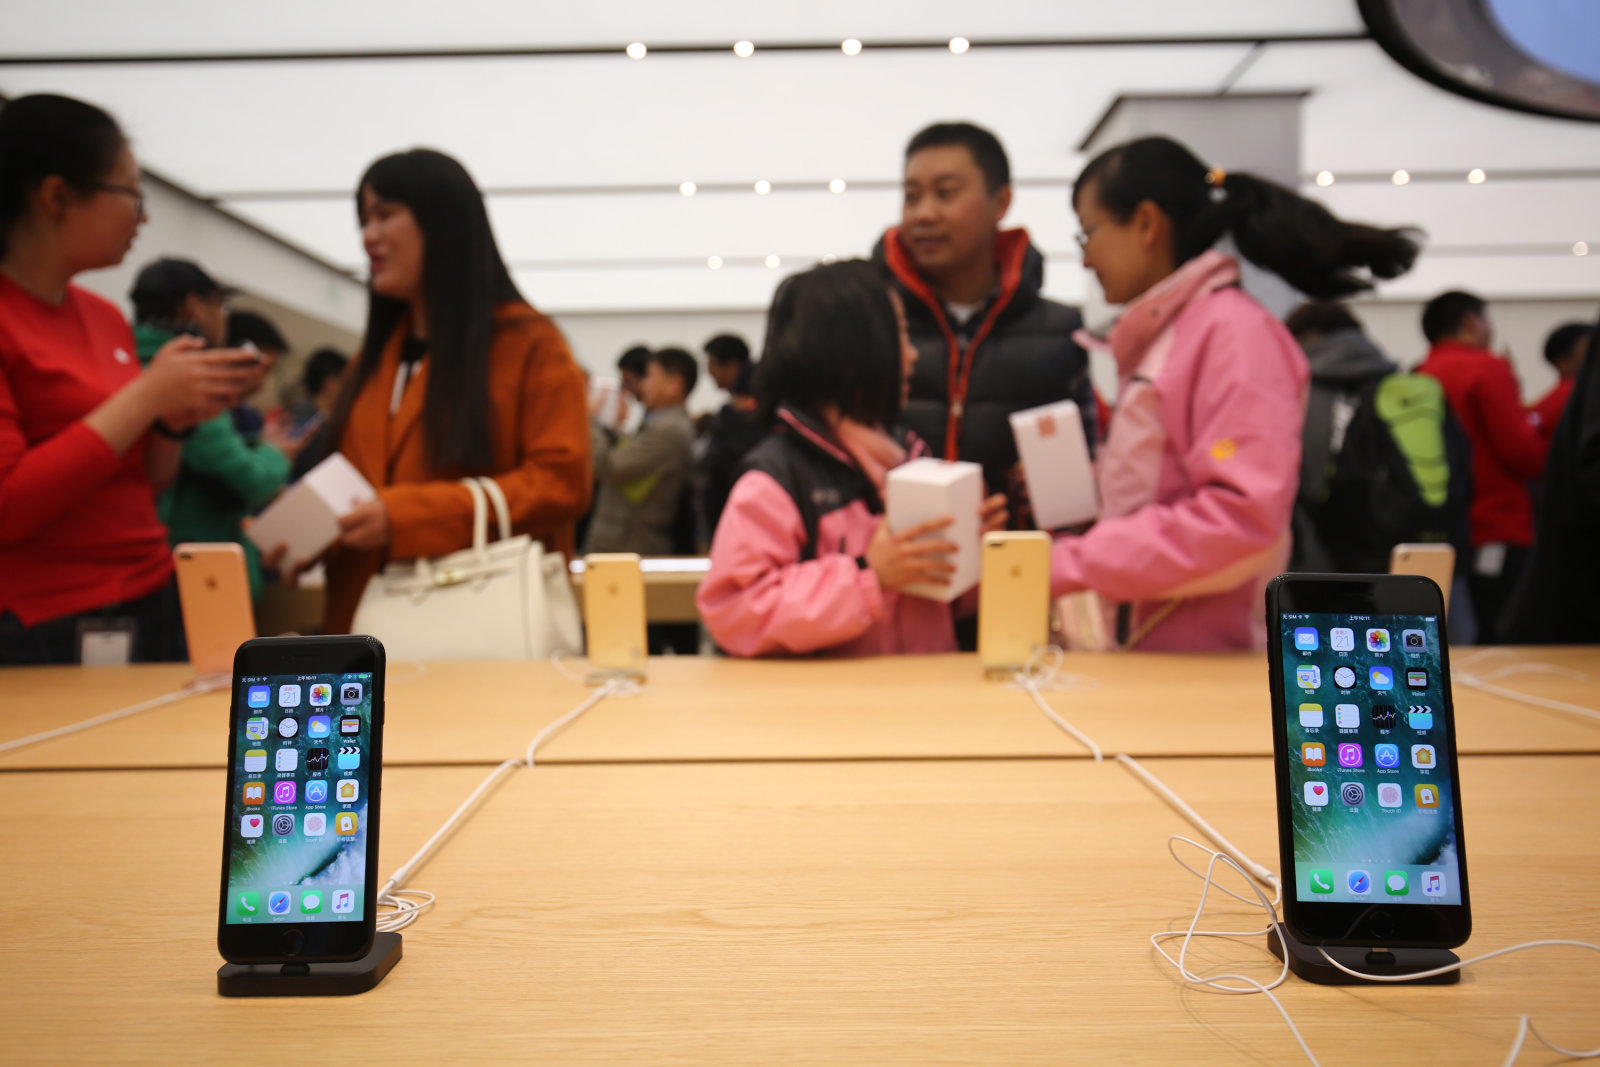 Senators want to know if Apple fought back on China's VPN ban